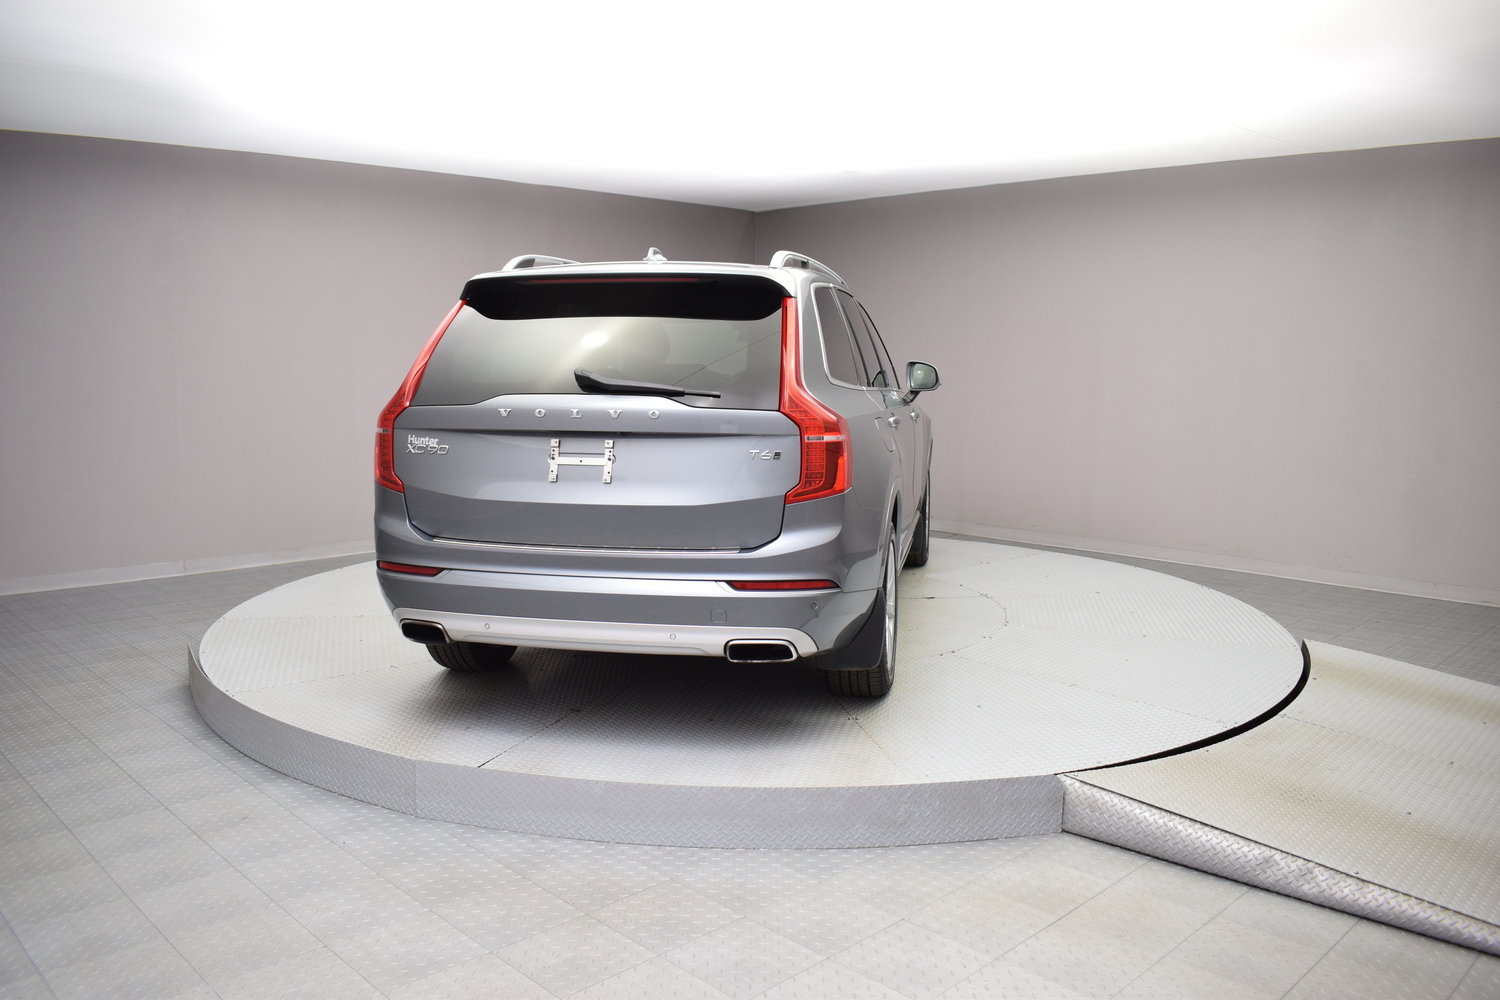 Used 2017 Volvo XC90 For Sale | Hendersonville NC | Serving Asheville,  Waynesville & Spartanburg | Stock: A81107B